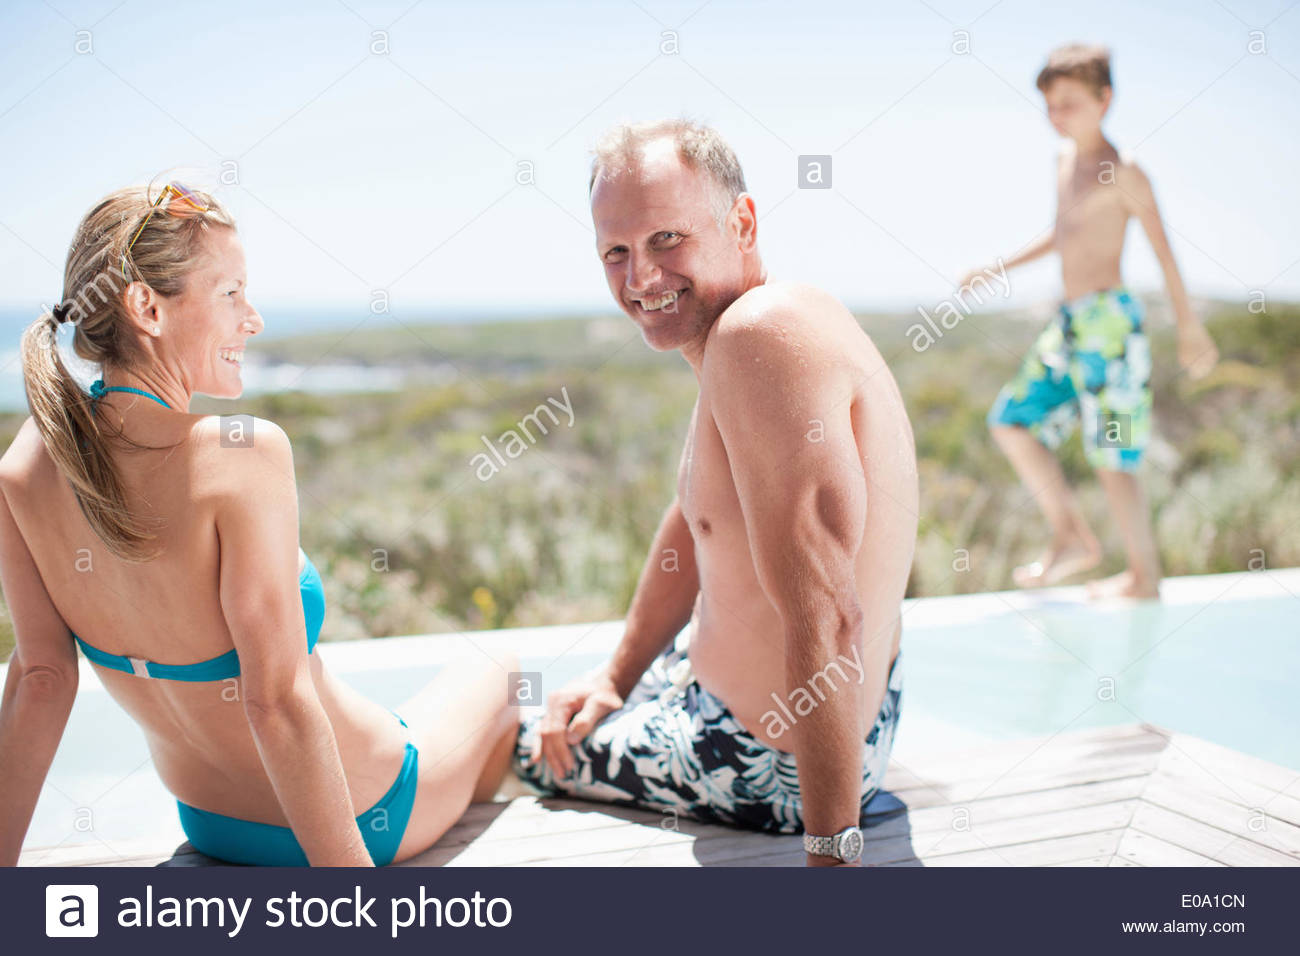 Family sitting by swimming pool Photo Stock